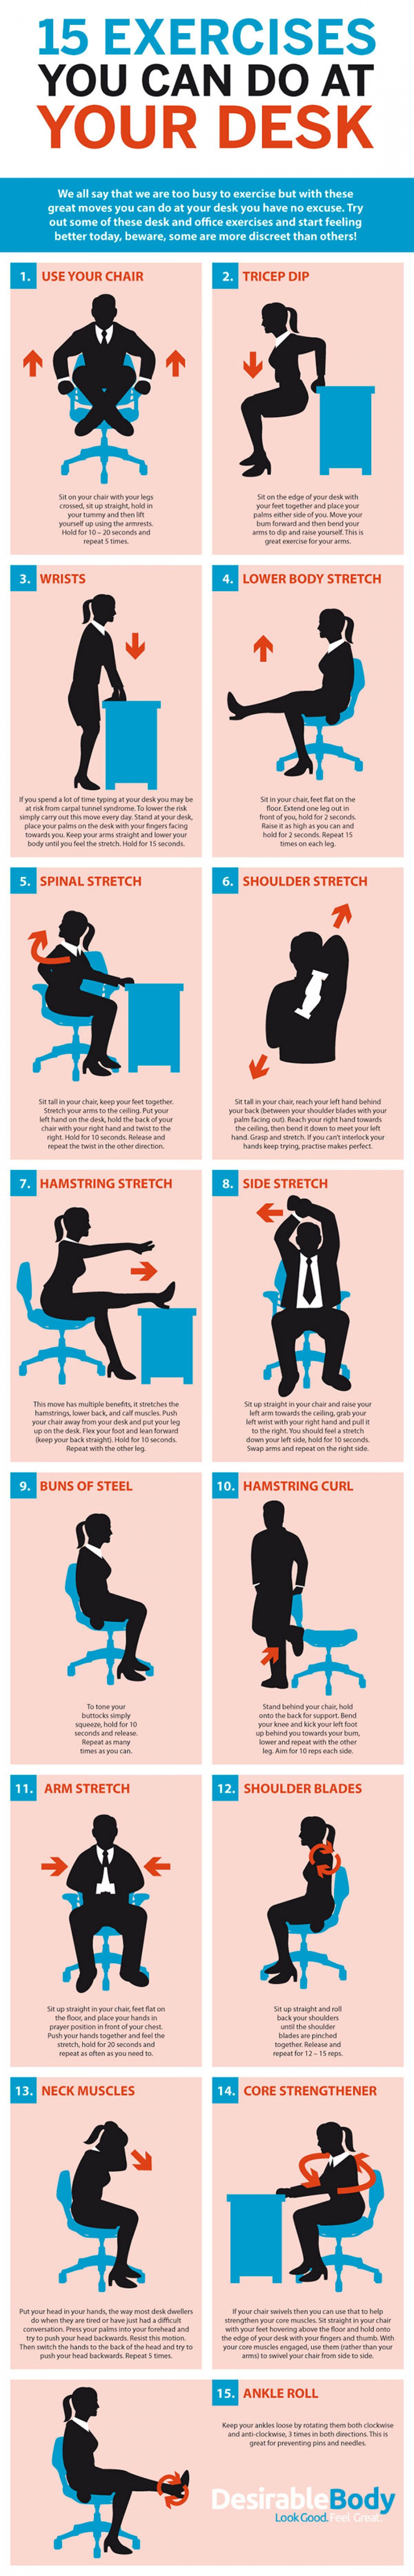 Here Are Some Simple Exercises You Can Do At Your Desk No Need For Expensive Gym Equipment Exercise W Exercise While Sitting Scoliosis Exercises Exercise